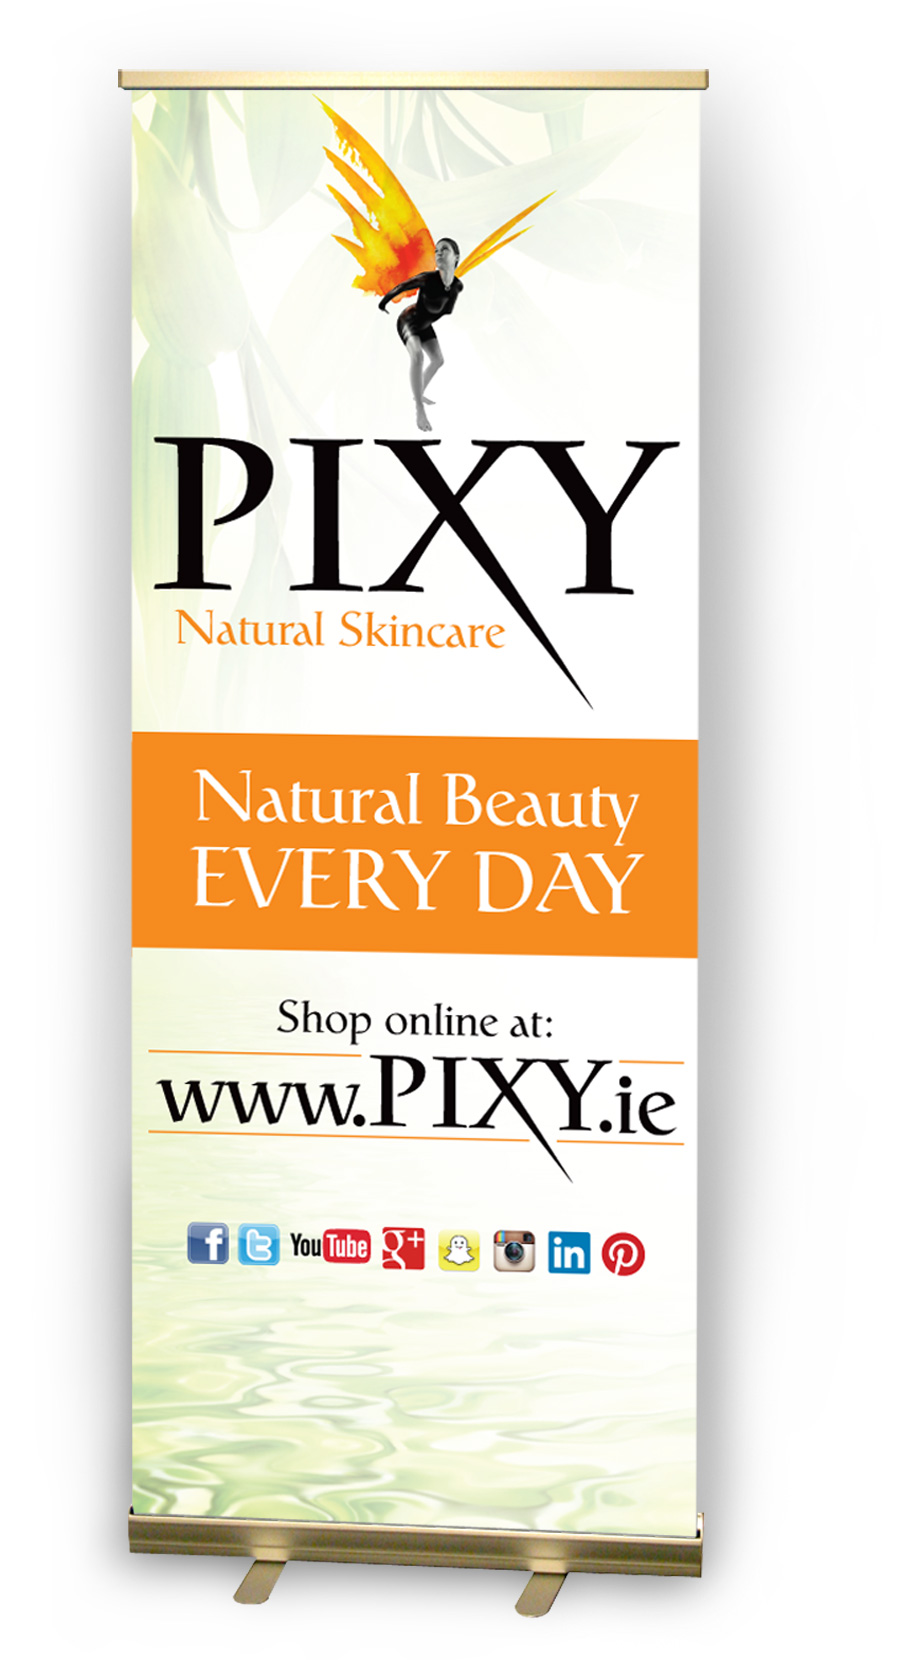 Pixy Natural Skincare Pull-Up Banner Design